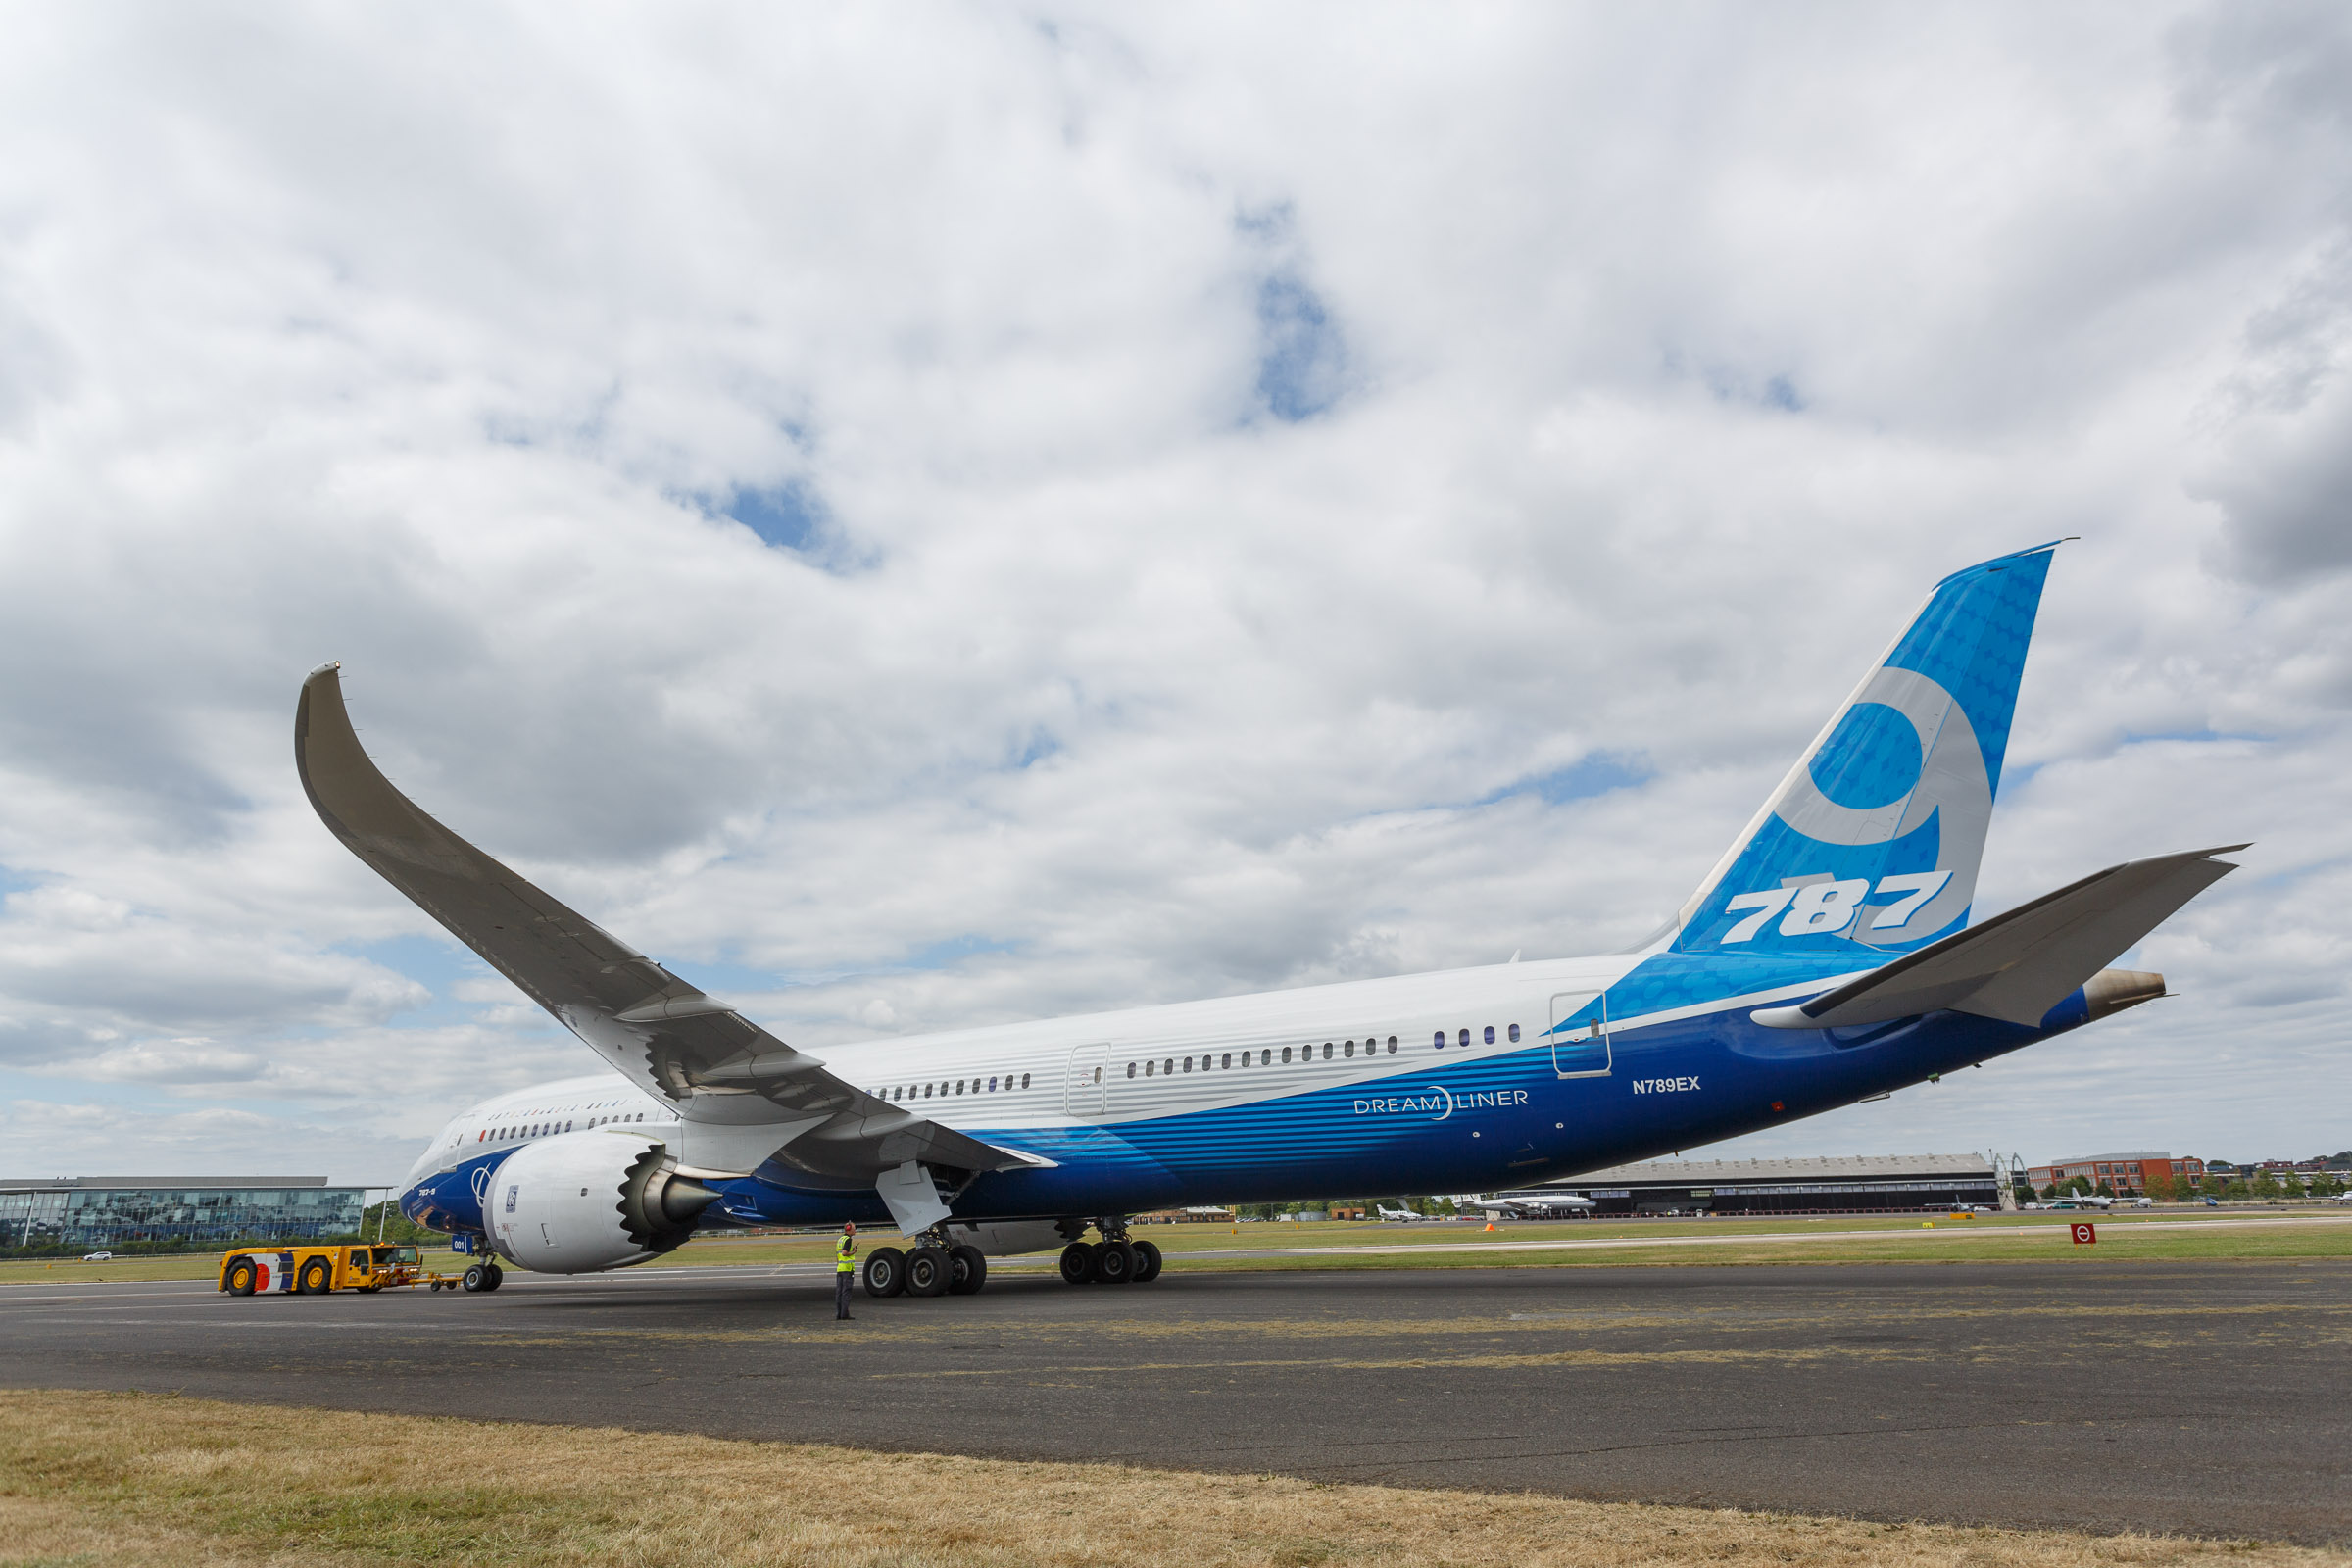 20140714-b​The Boeing 787-9 is towed out onto the tarmac.oeing-787-9-dreamliner-farnborough-001.jpg